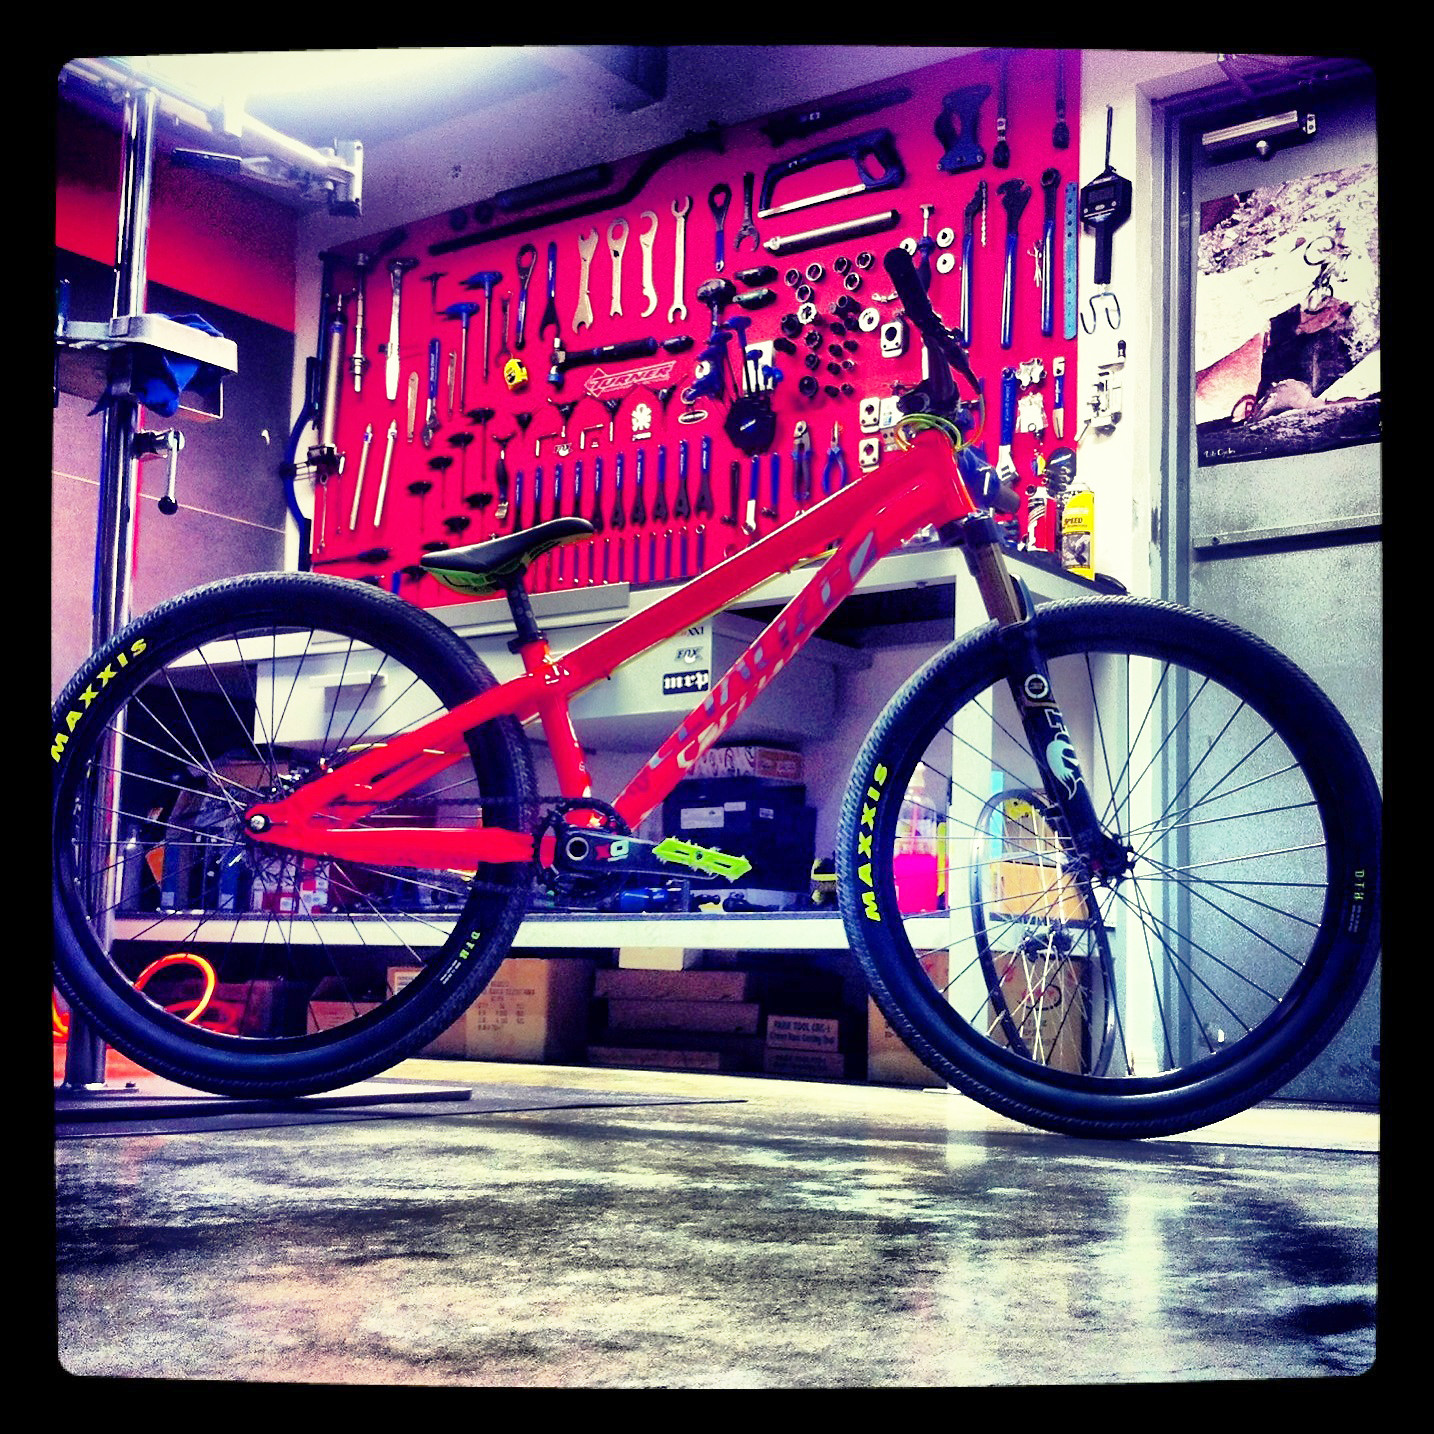 2013 SPECIALIZED P.3 2013